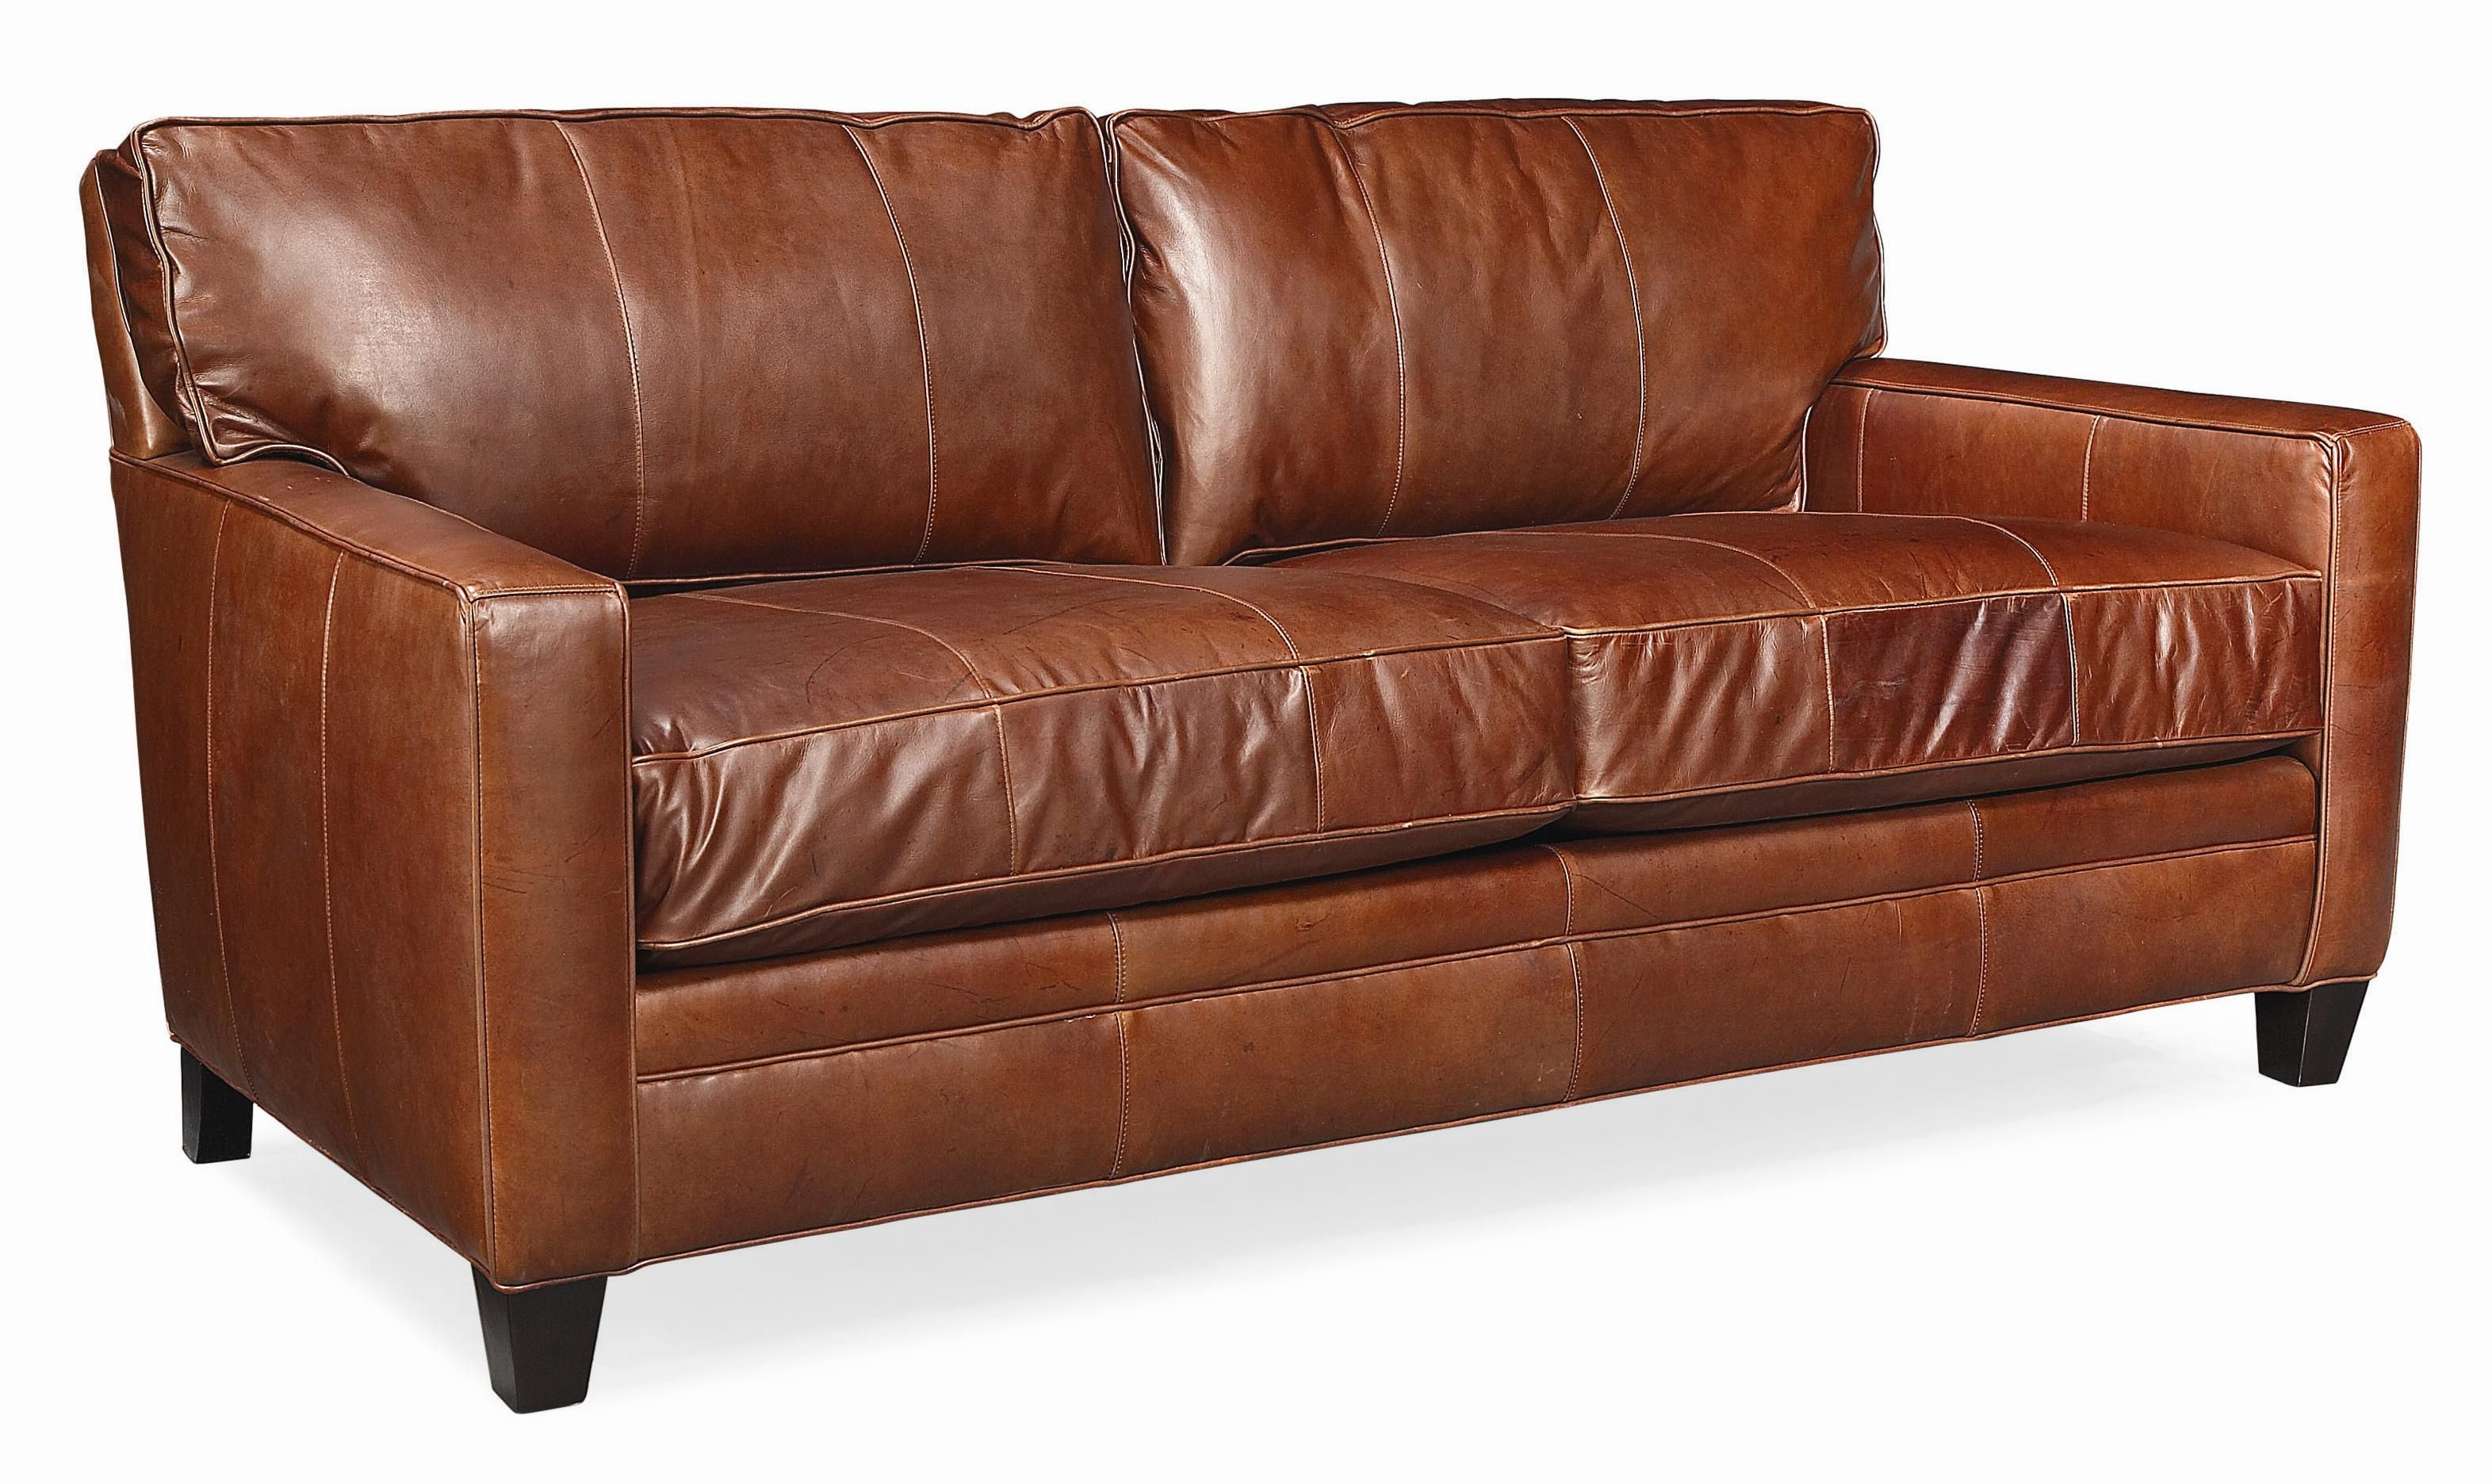 Howell Sofa Furniture Row Sets Thomasville Mercer Series 74 Quot Leather With Track